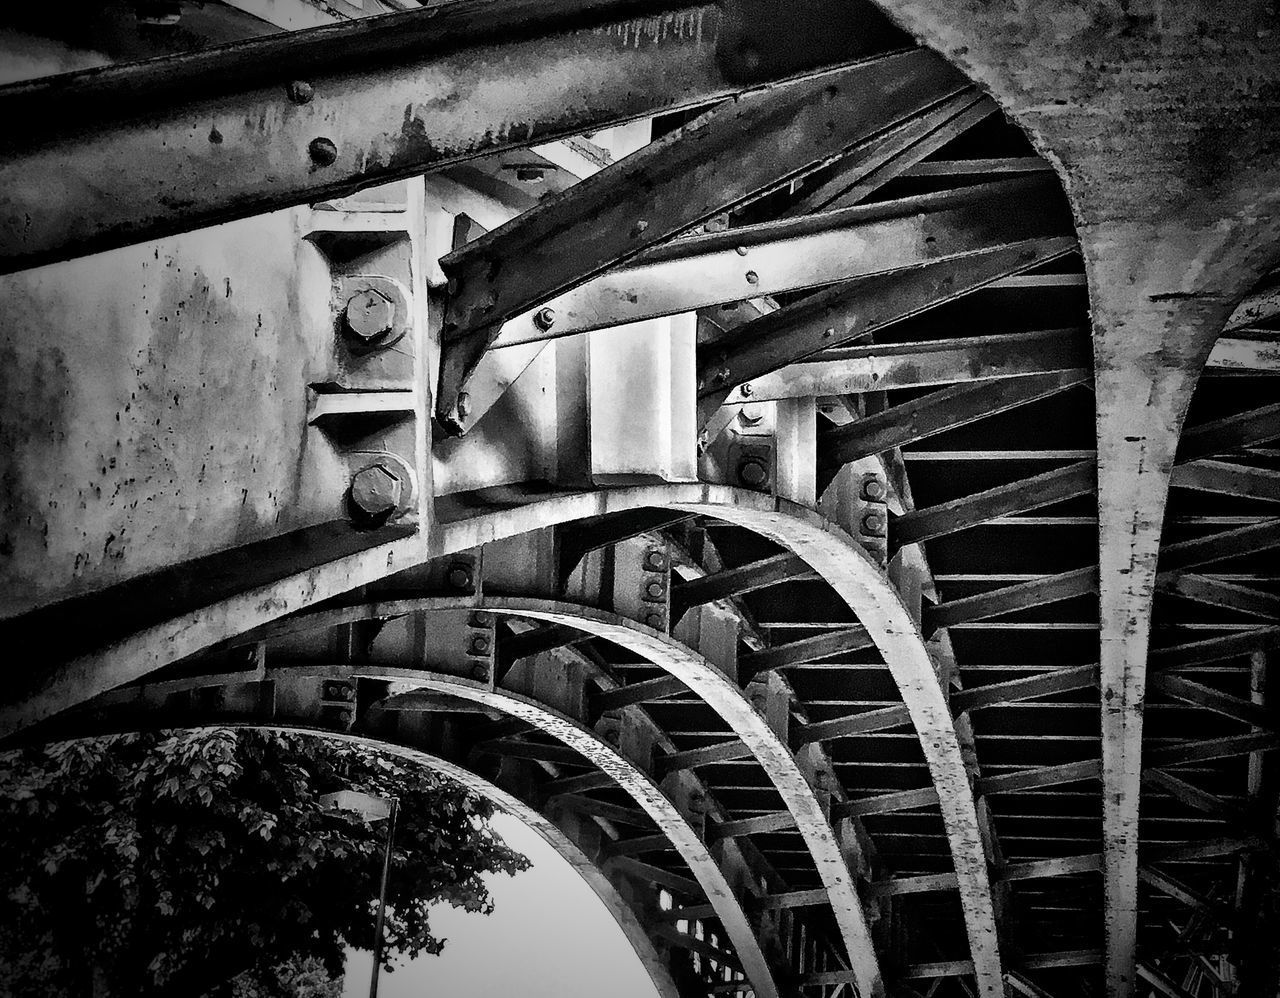 Architecture Photographer Built Structure Low Angle View Day Outdoors Close-up Black & White Photooftheday Photography Cahors EyeEmBestPics Eye4photography  Bridge Bridge - Man Made Structure EyeEm Best Shots The Great Outdoors - 2017 EyeEm Awards EyeEm Best Edits The Architect - 2017 EyeEm Awards Architecture_collection EyeEm Gallery Architectural Feature Photo Train Awesome_shots Live For The Story The Street Photographer - 2017 EyeEm Awards The Great Outdoors - 2017 EyeEm Awards The Architect - 2017 EyeEm Awards